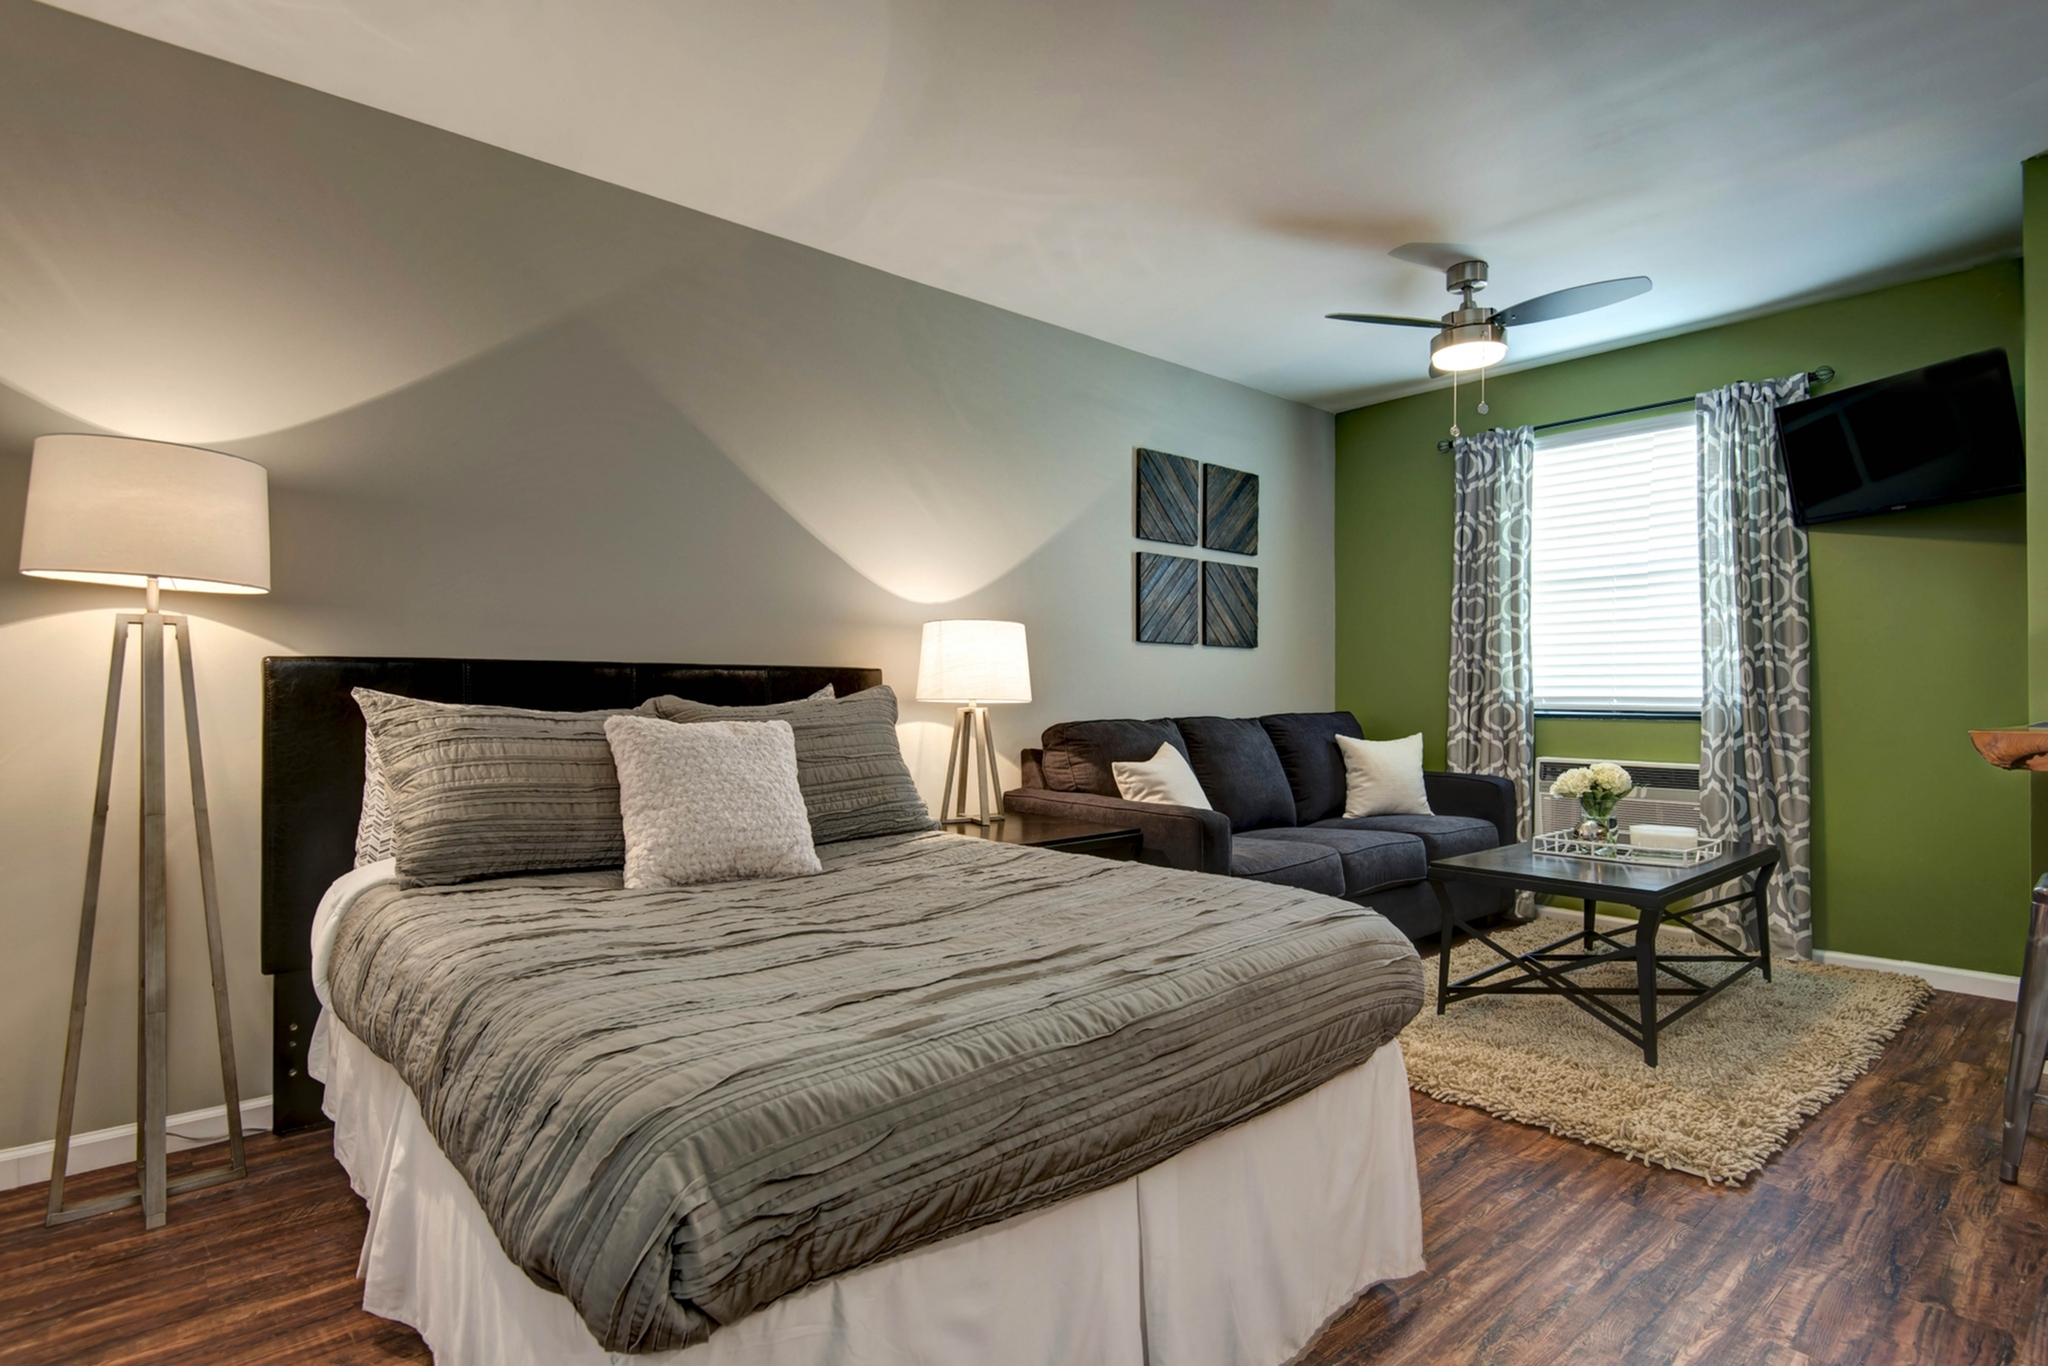 studio apartment with bed with grey bed spread and a blue couch in the living room